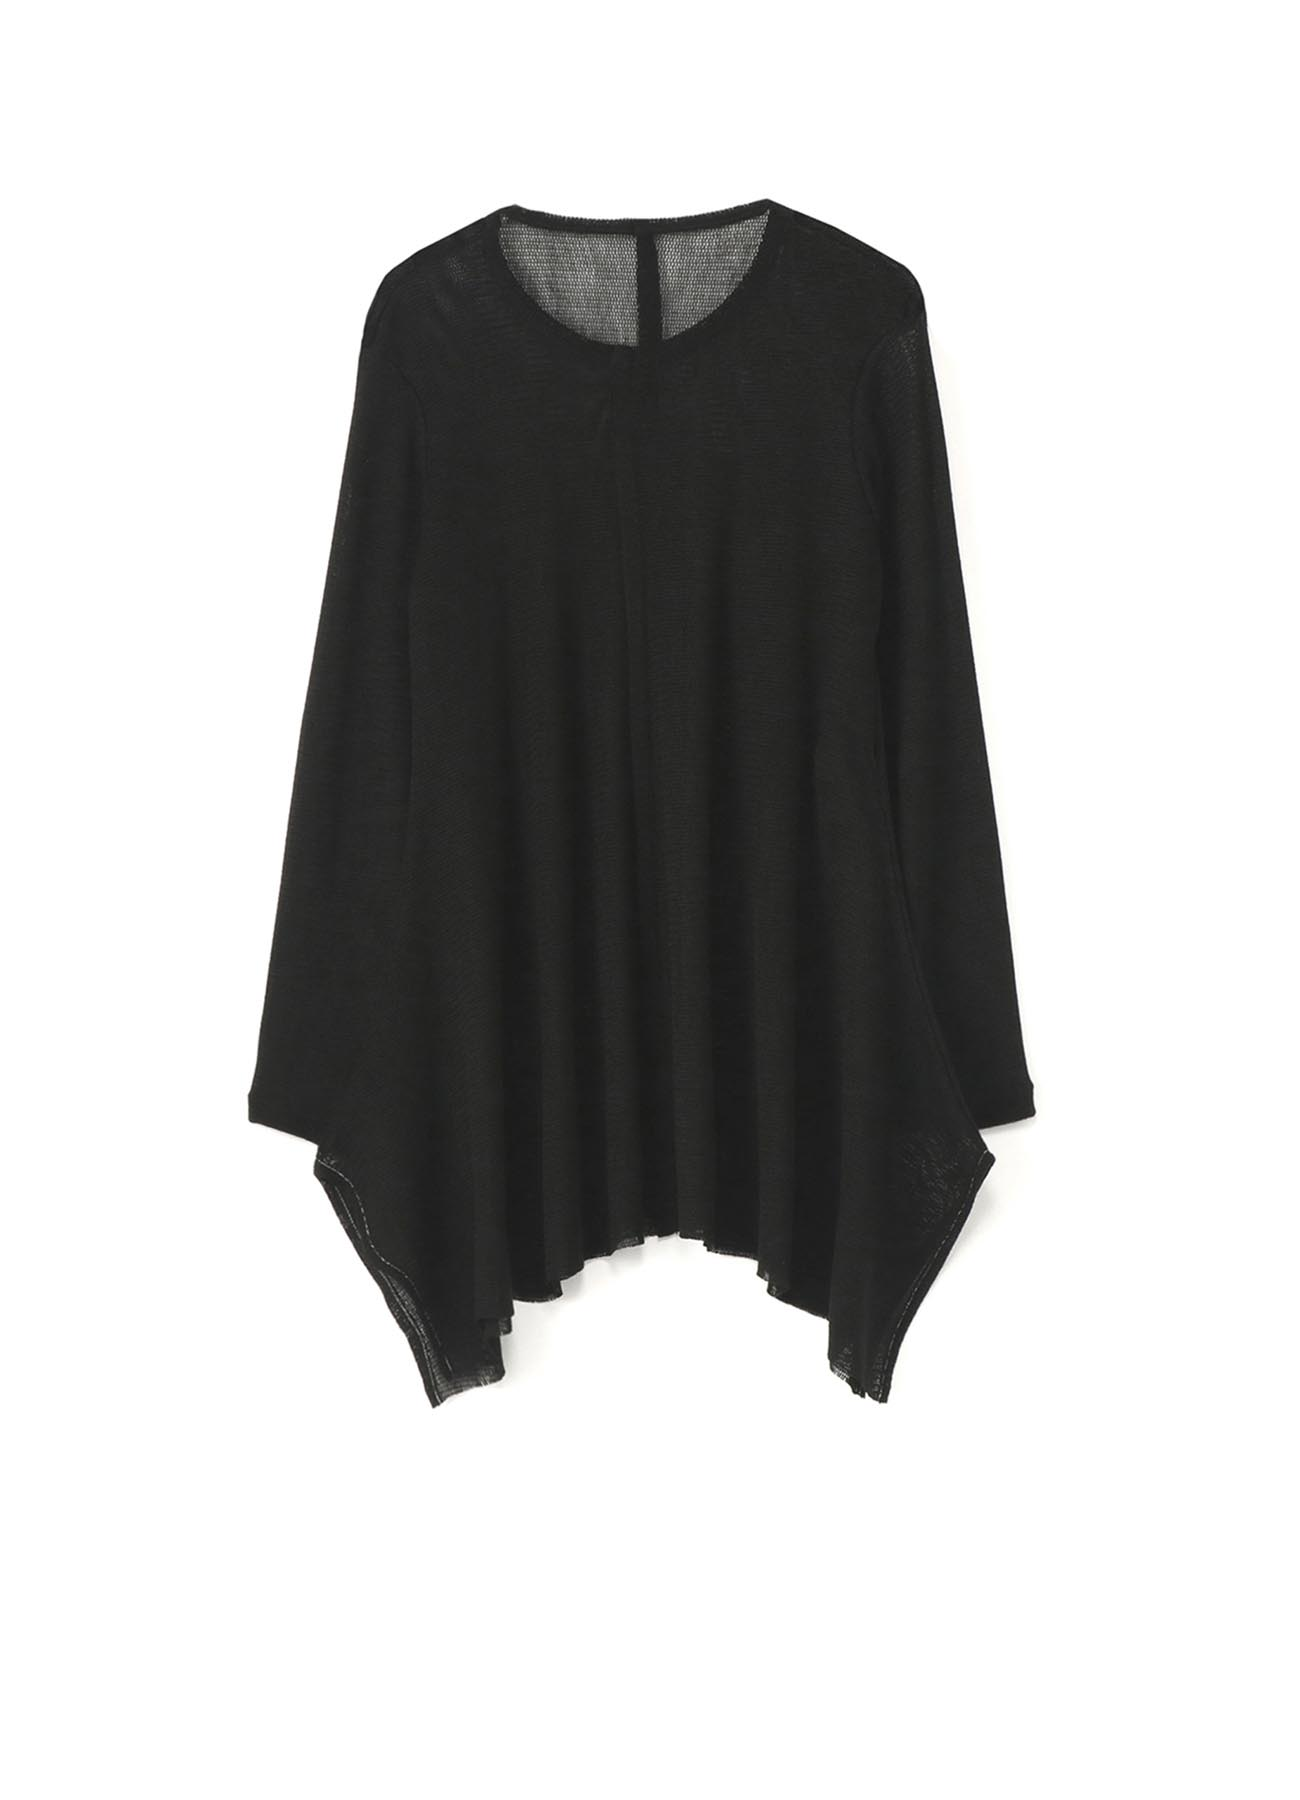 ACRYL WOOL TULLE BOTTOM DRAPE LONG SLEEVE TOP